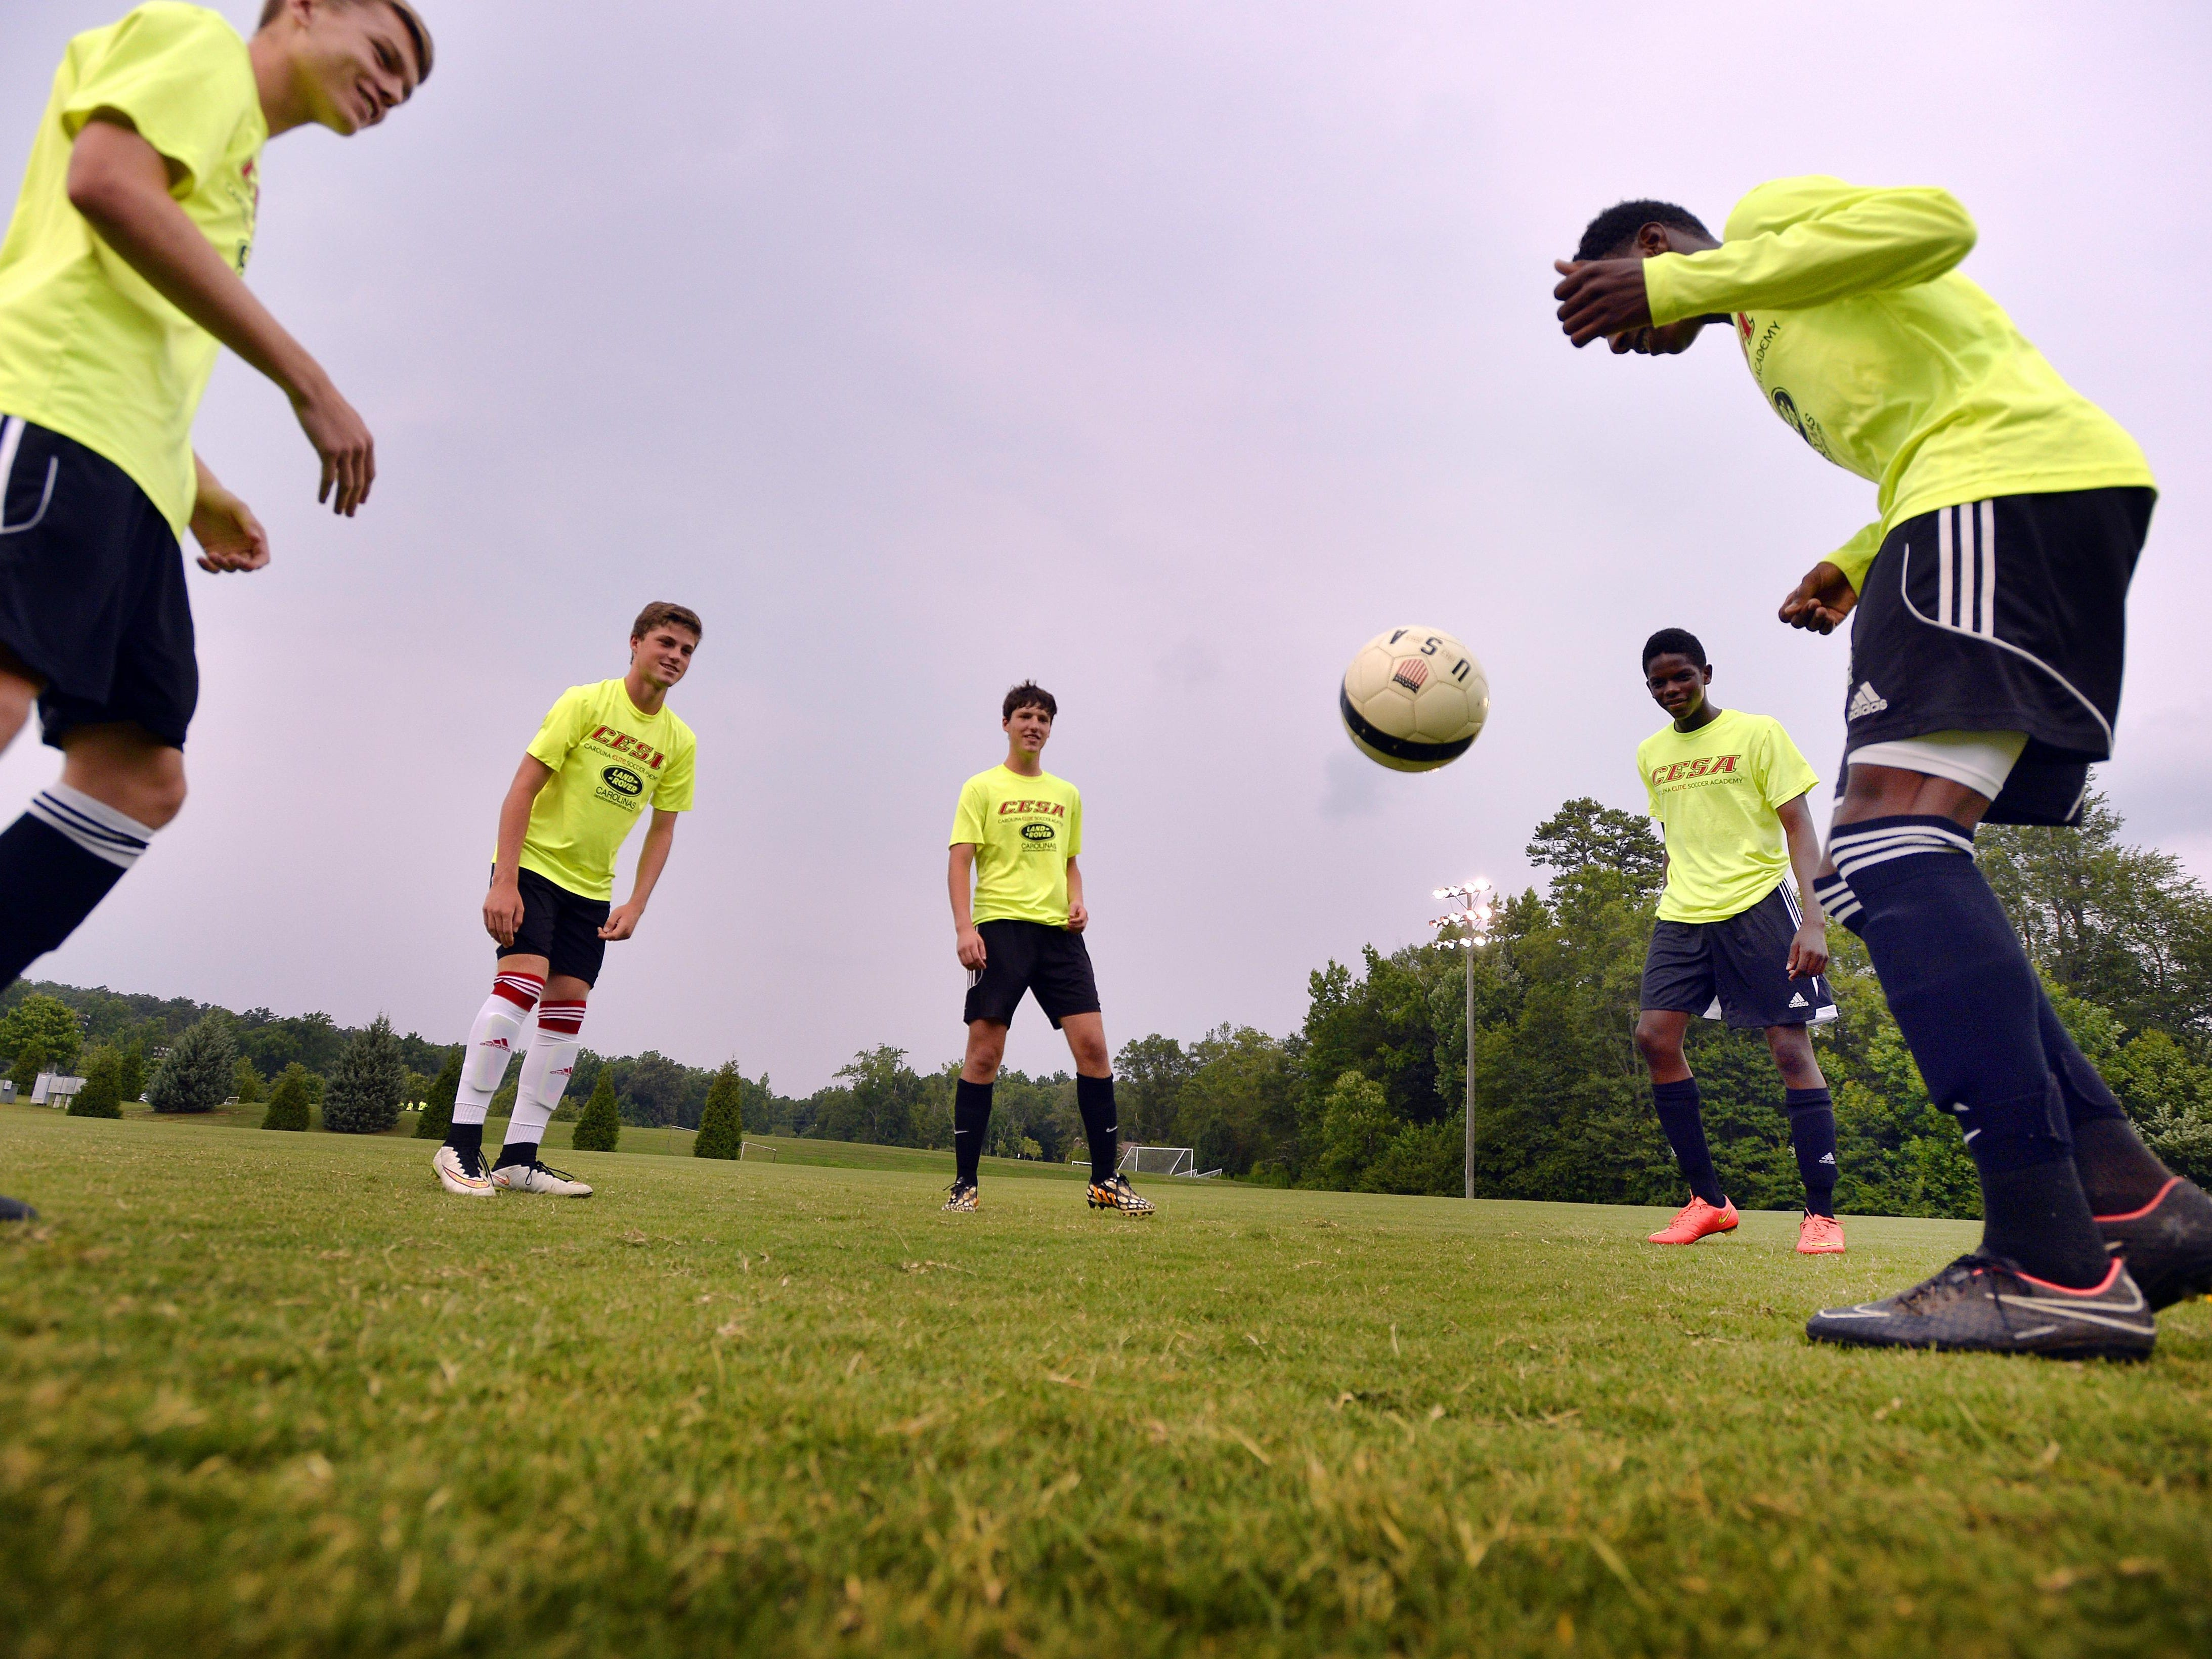 Members of the CESA 98 soccer team practice at the Wenwood Soccer Complex on Wednesday.